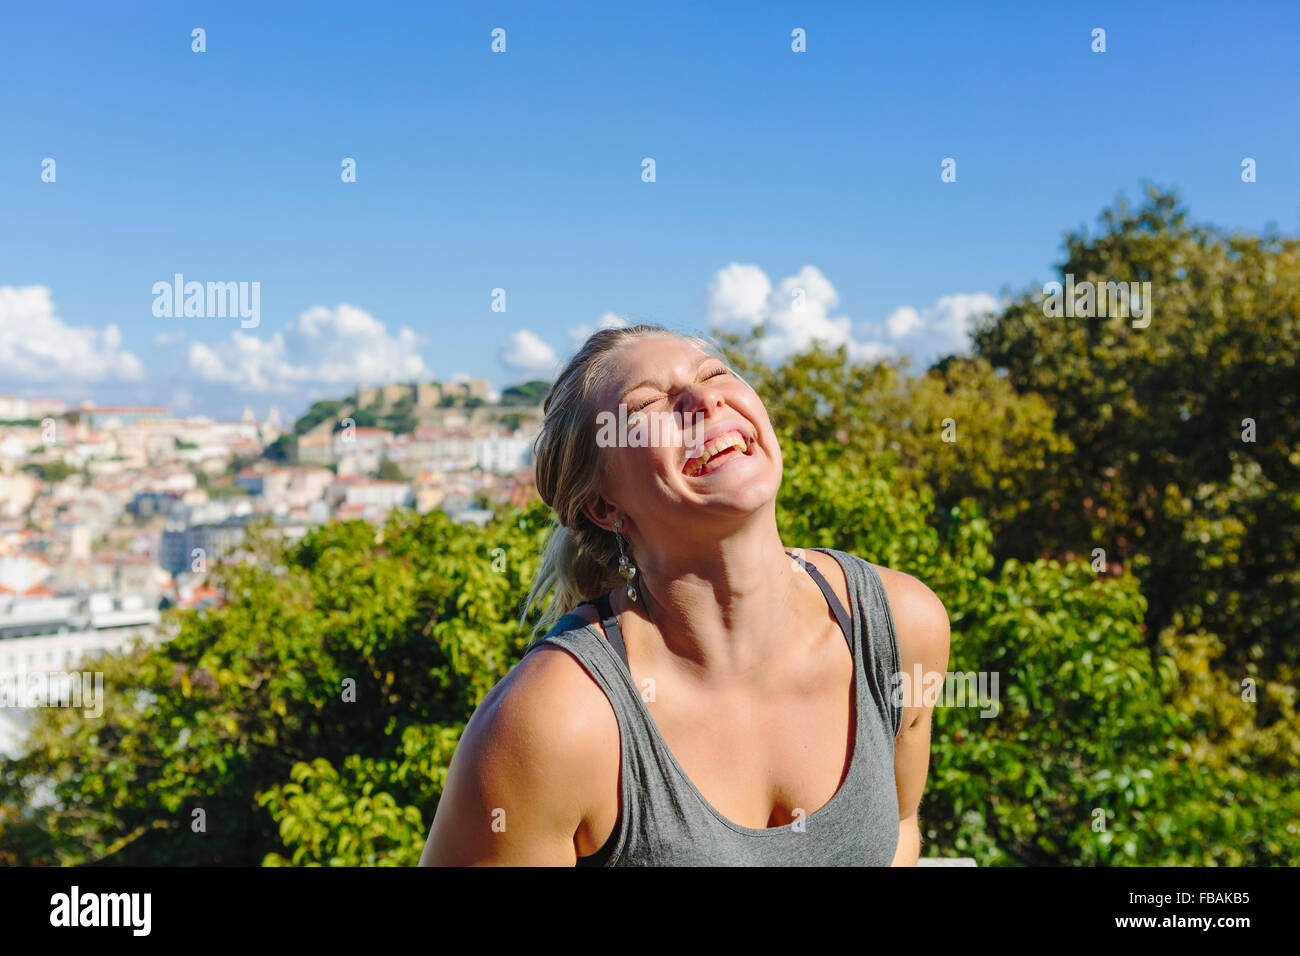 Portugal, Lisbon, Portrait of young woman laughing - Stock Image